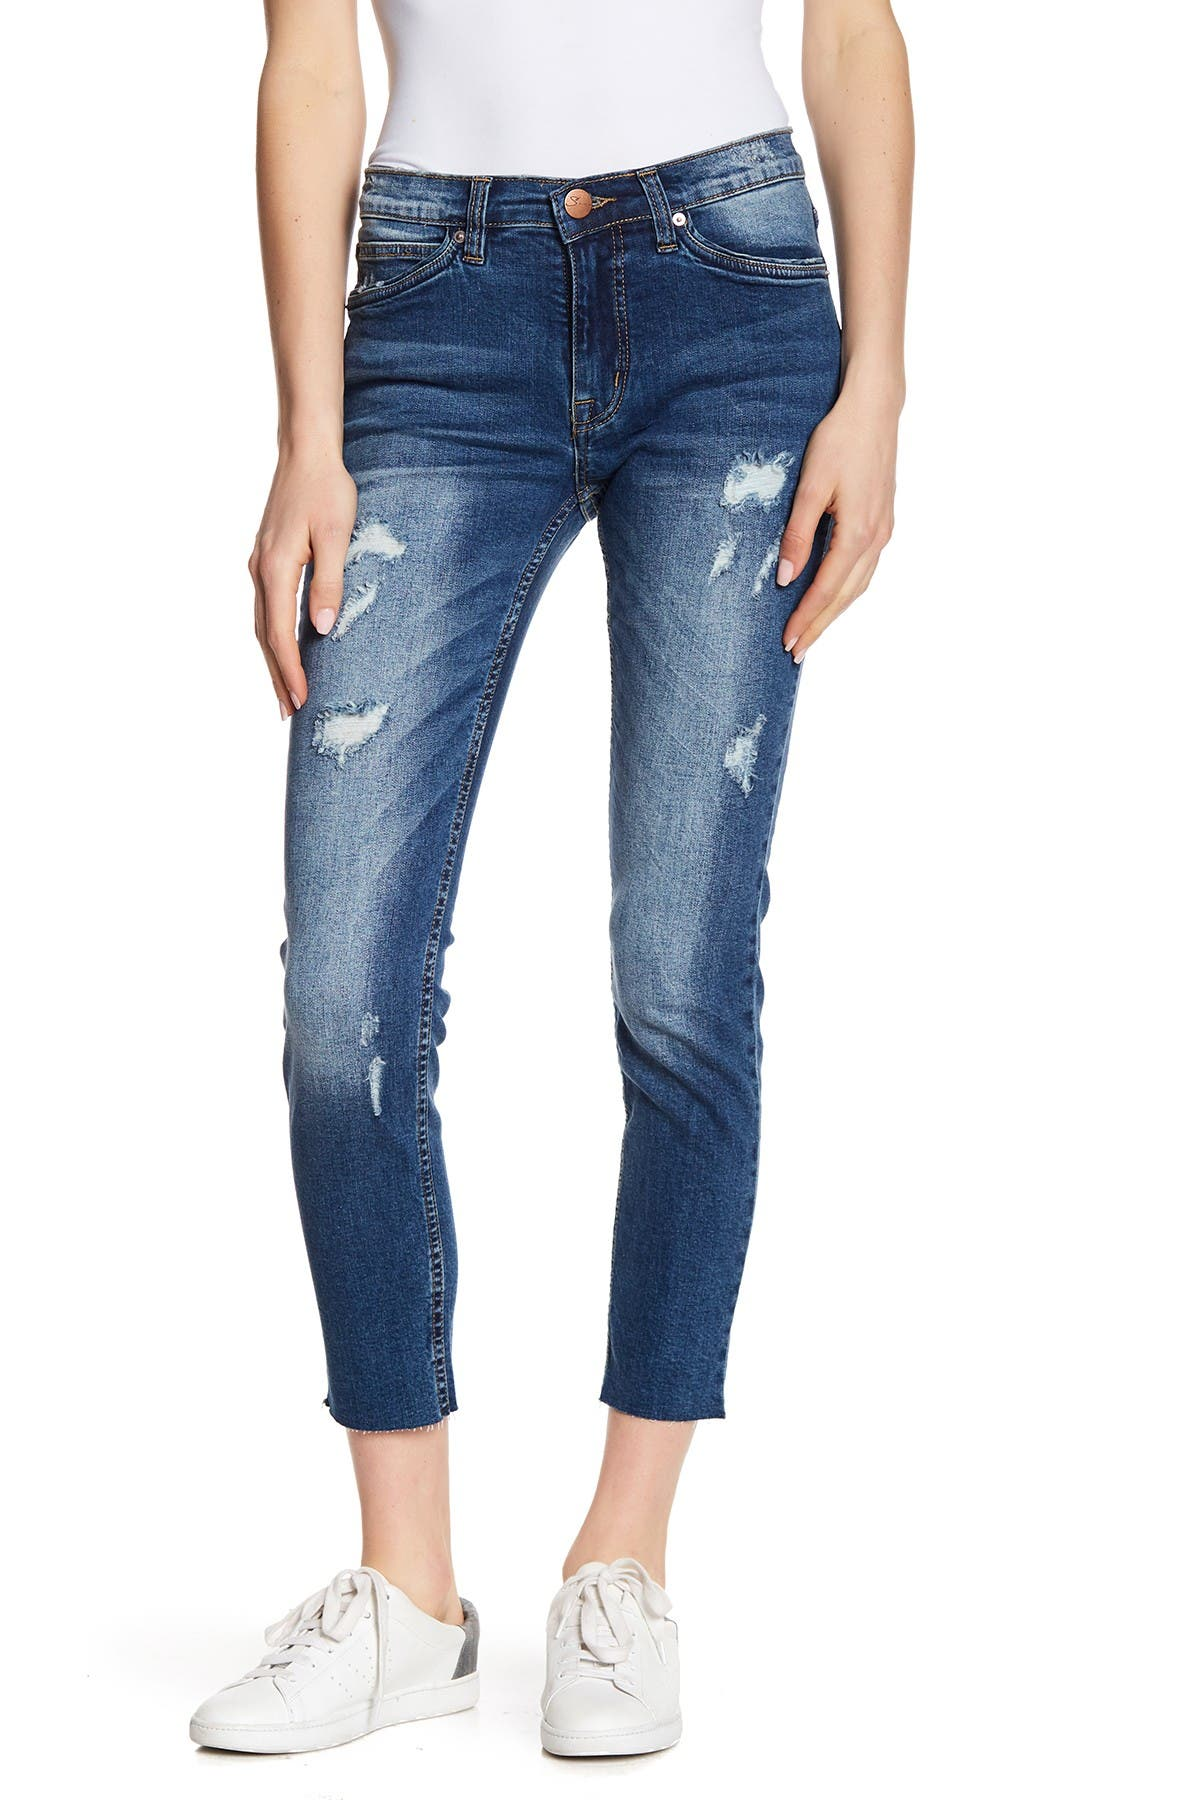 Image of SUPPLIES BY UNIONBAY Hart Distressed Cropped Skinny Jeans